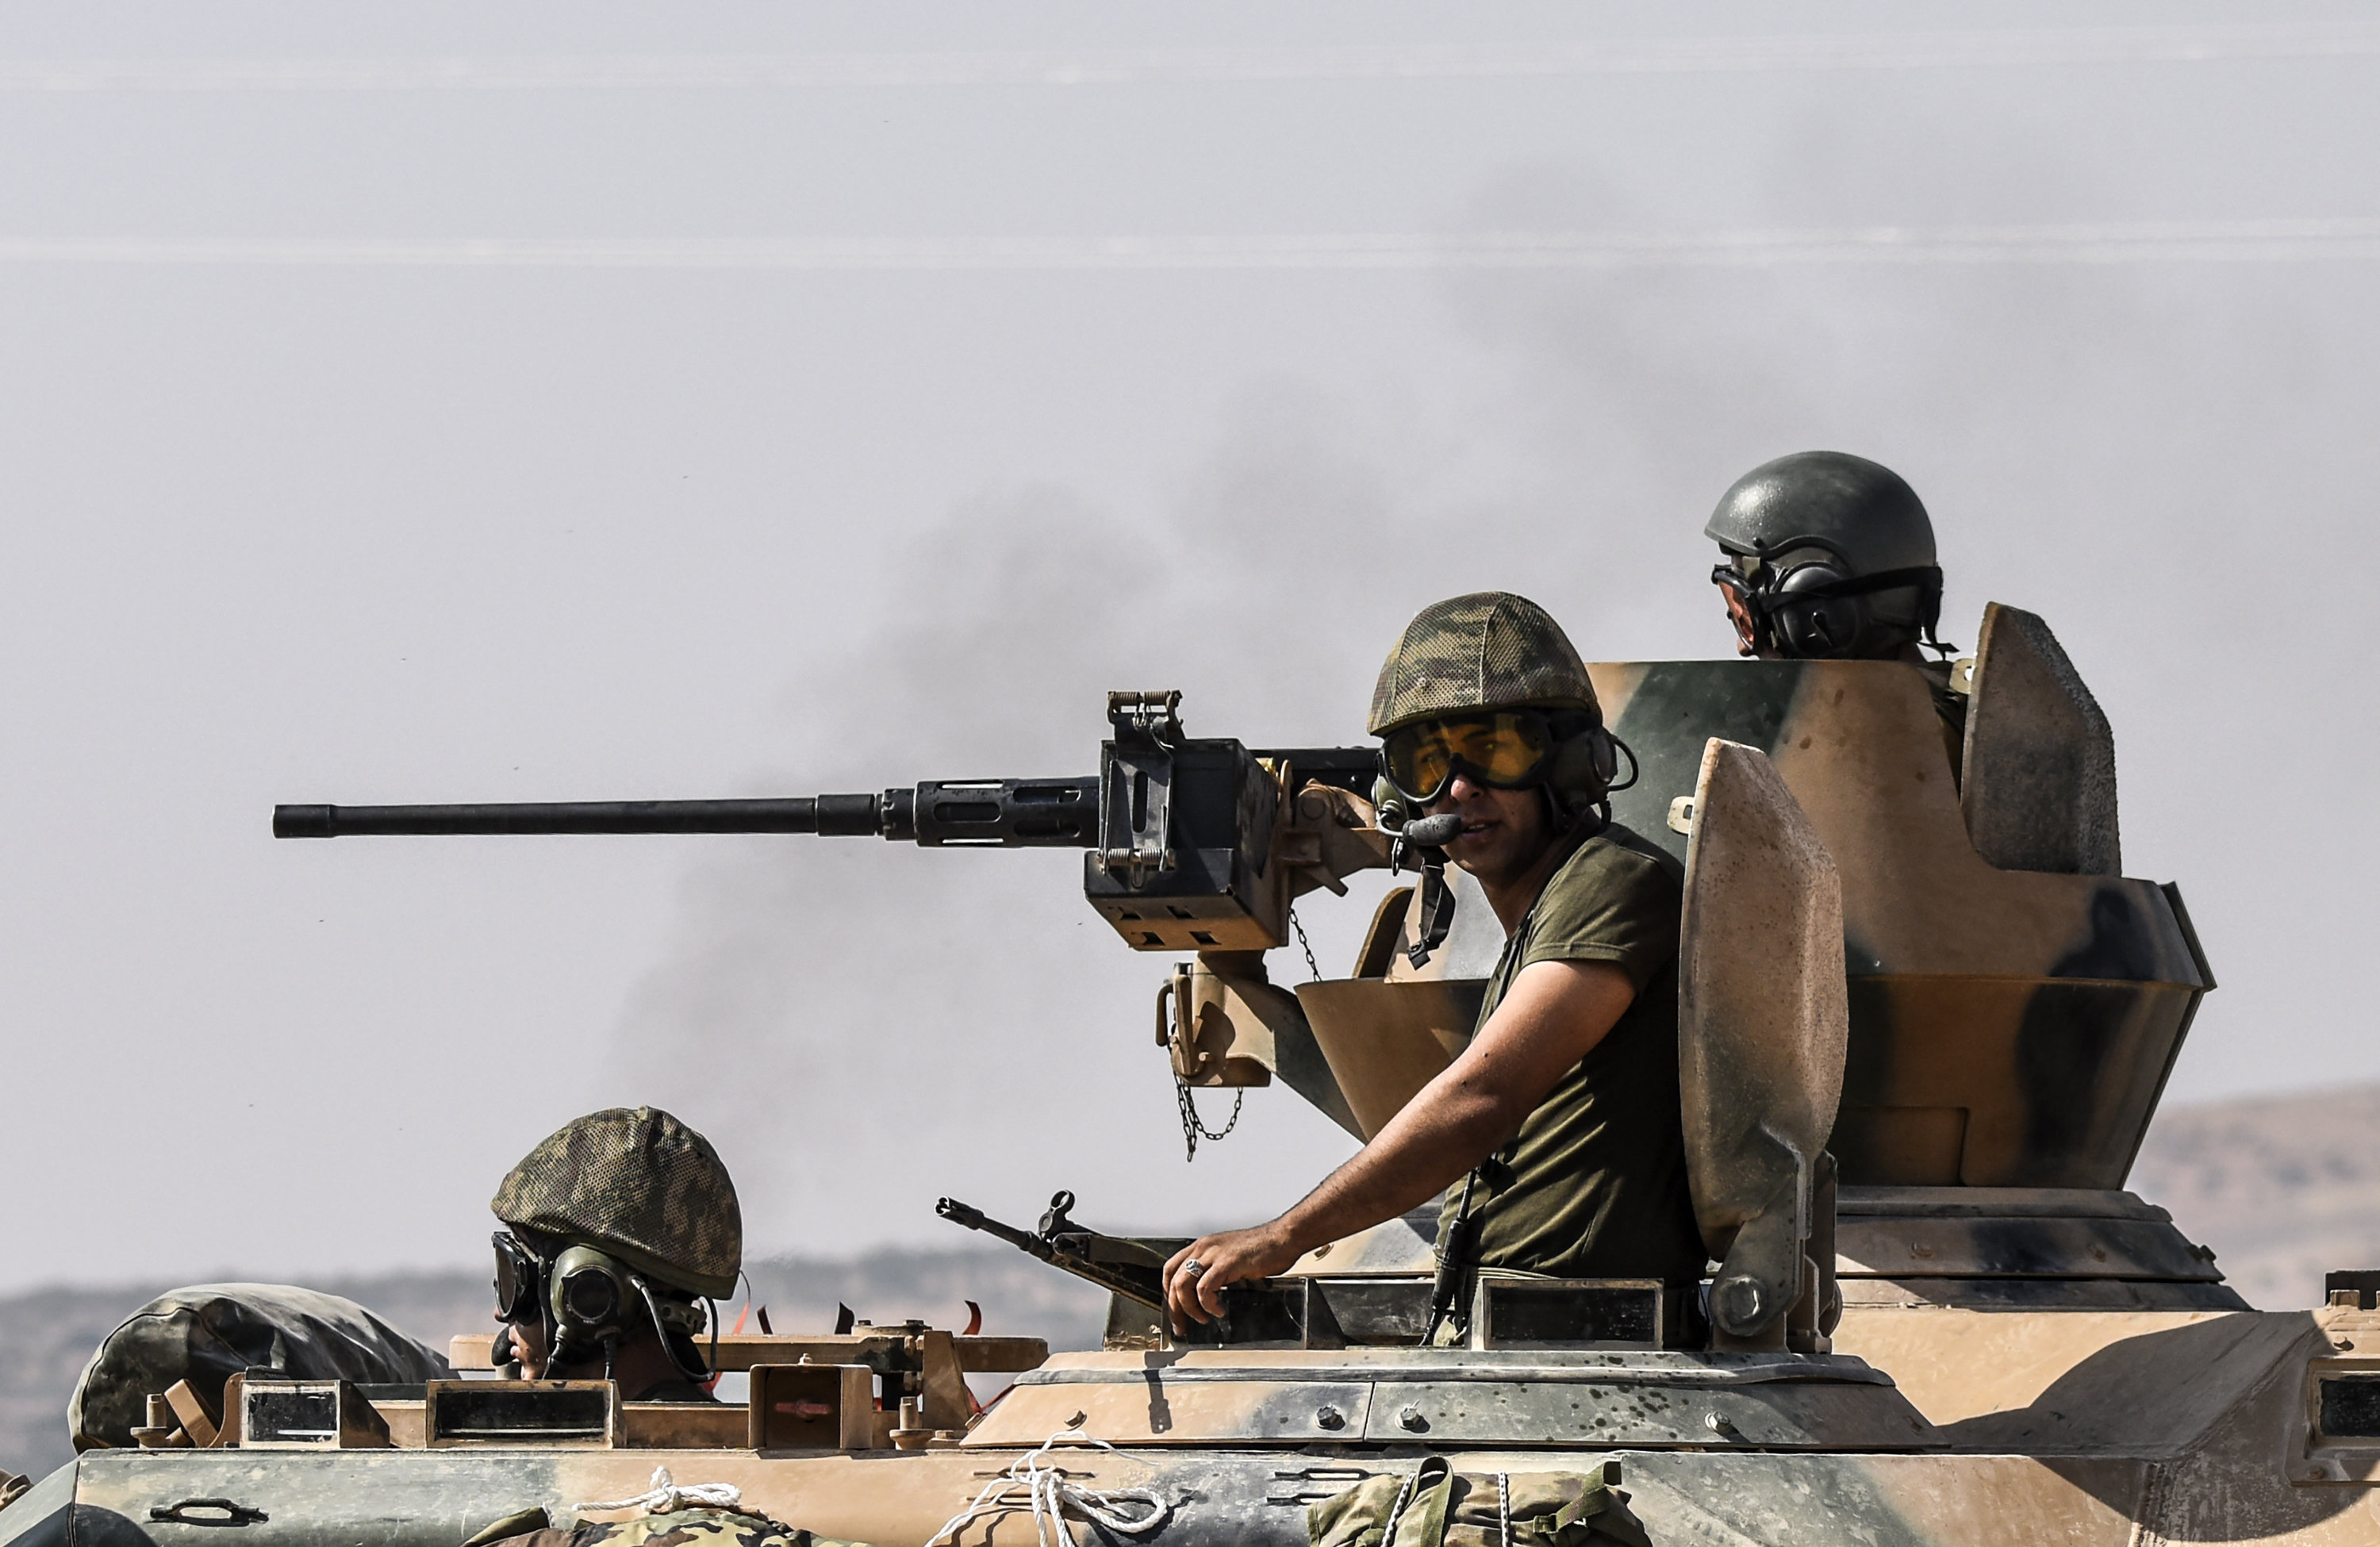 Turkish soldiers sit on a tank driving to Syria from the Turkish Syrian border city of Karkamis in the southern region of Gaziantep, on August 27, 2016